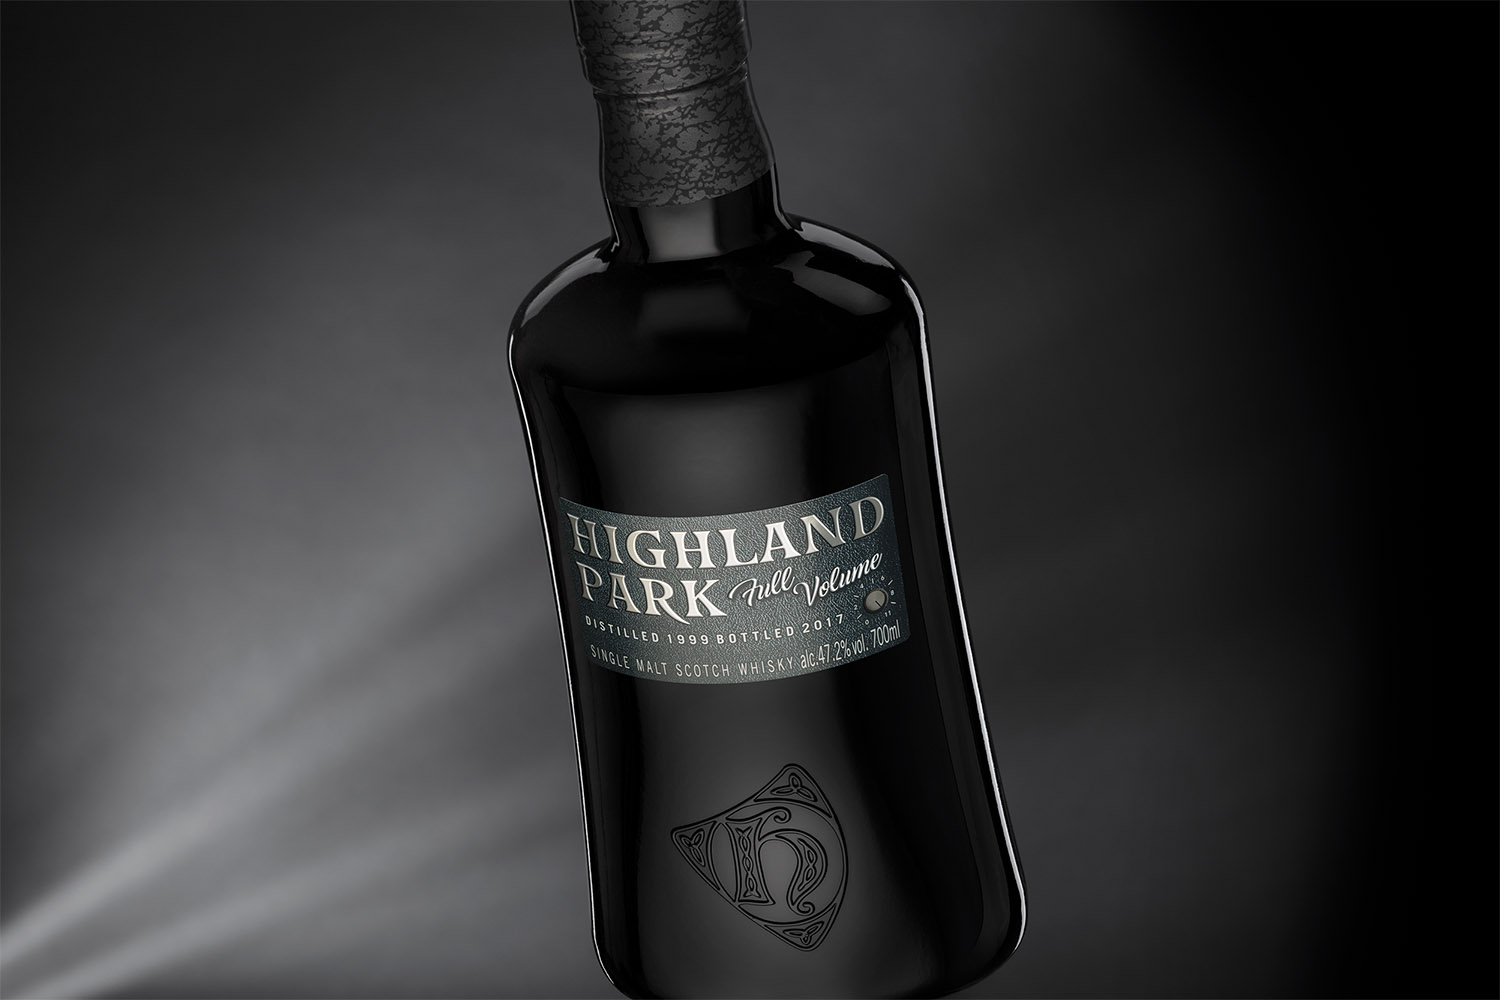 Mountain_Agency_Glasgow_Highland Park_Full Volume_002.jpg